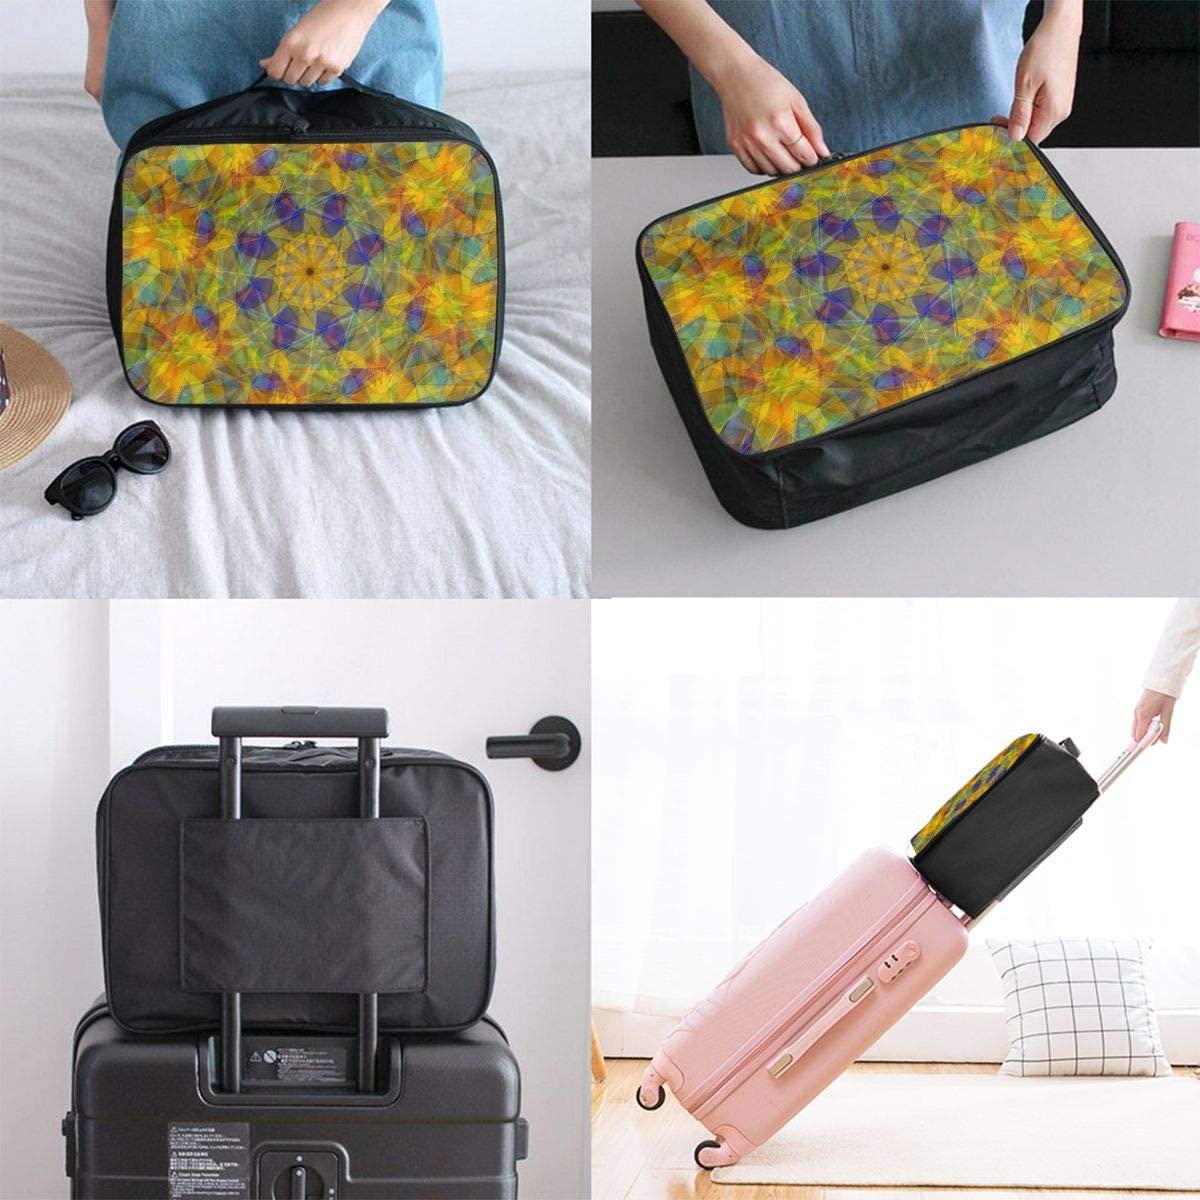 Yunshm Farbenpracht Kaleidoscope Colorful Units Rainbow Gold Customized Trolley Handbag Waterproof Unisex Large Capacity For Business Travel Storage